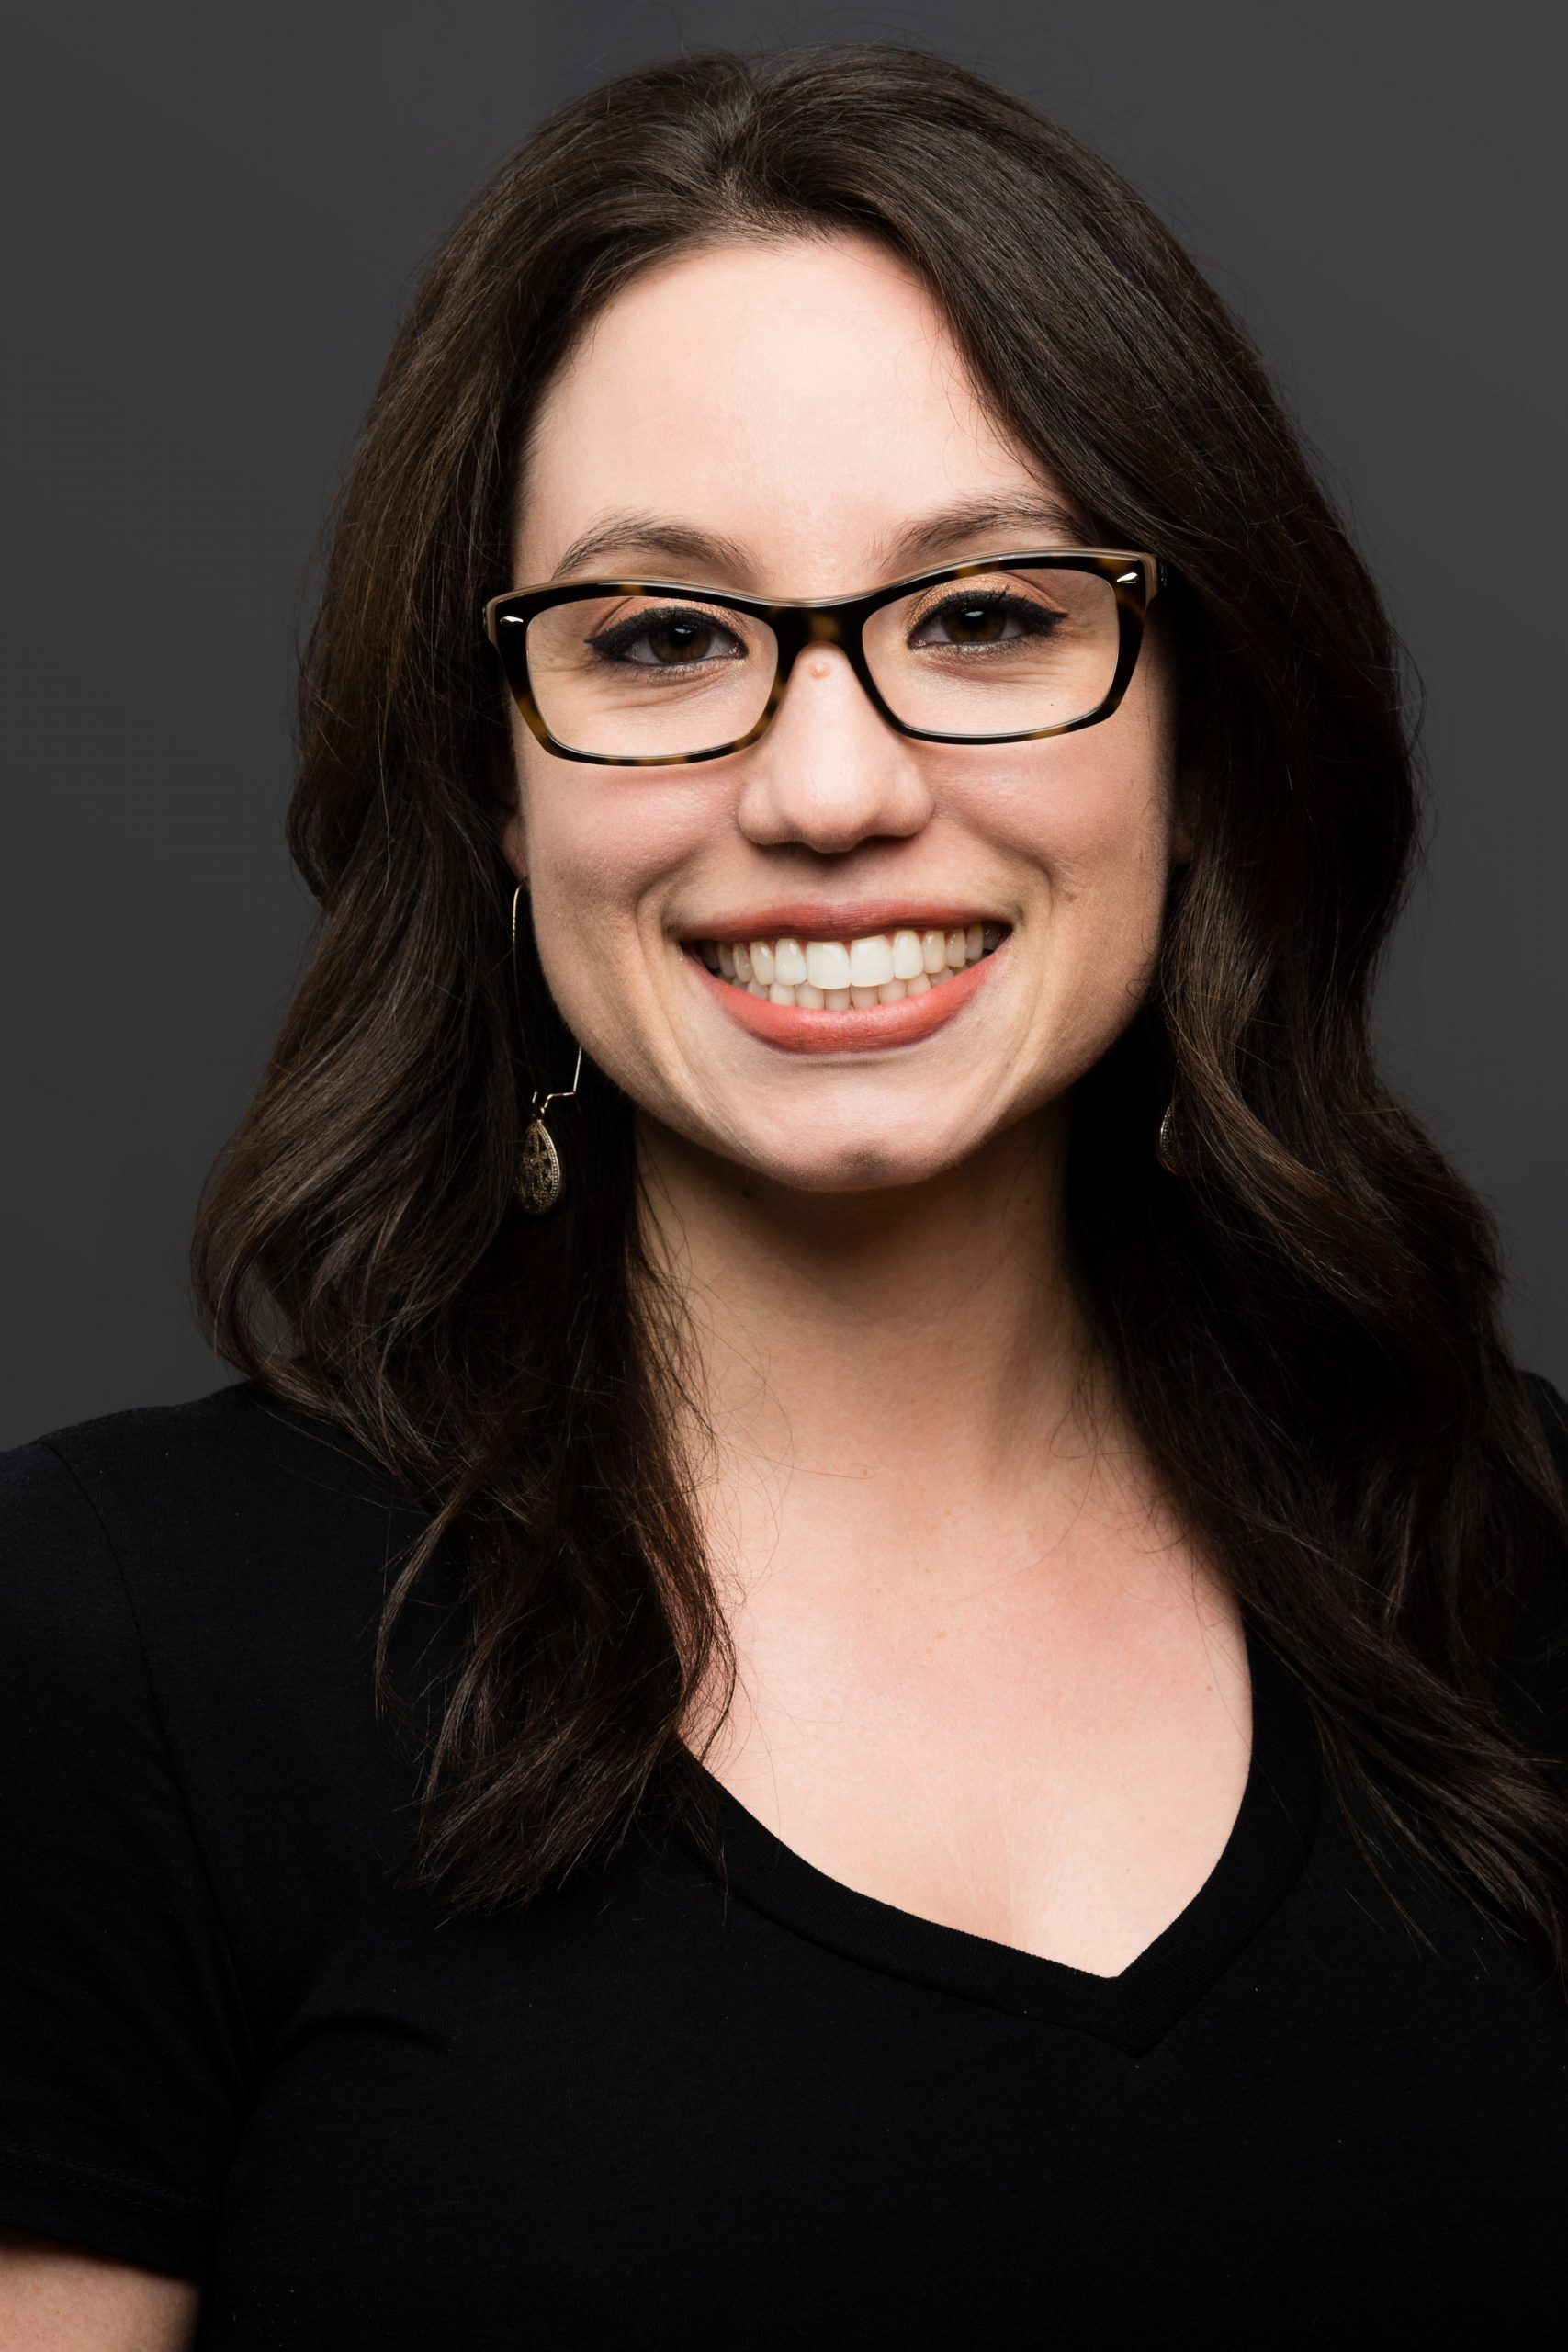 A formal headshot of Becca Bloom, with black-framed glasses, wavy hair, and a black shirt.